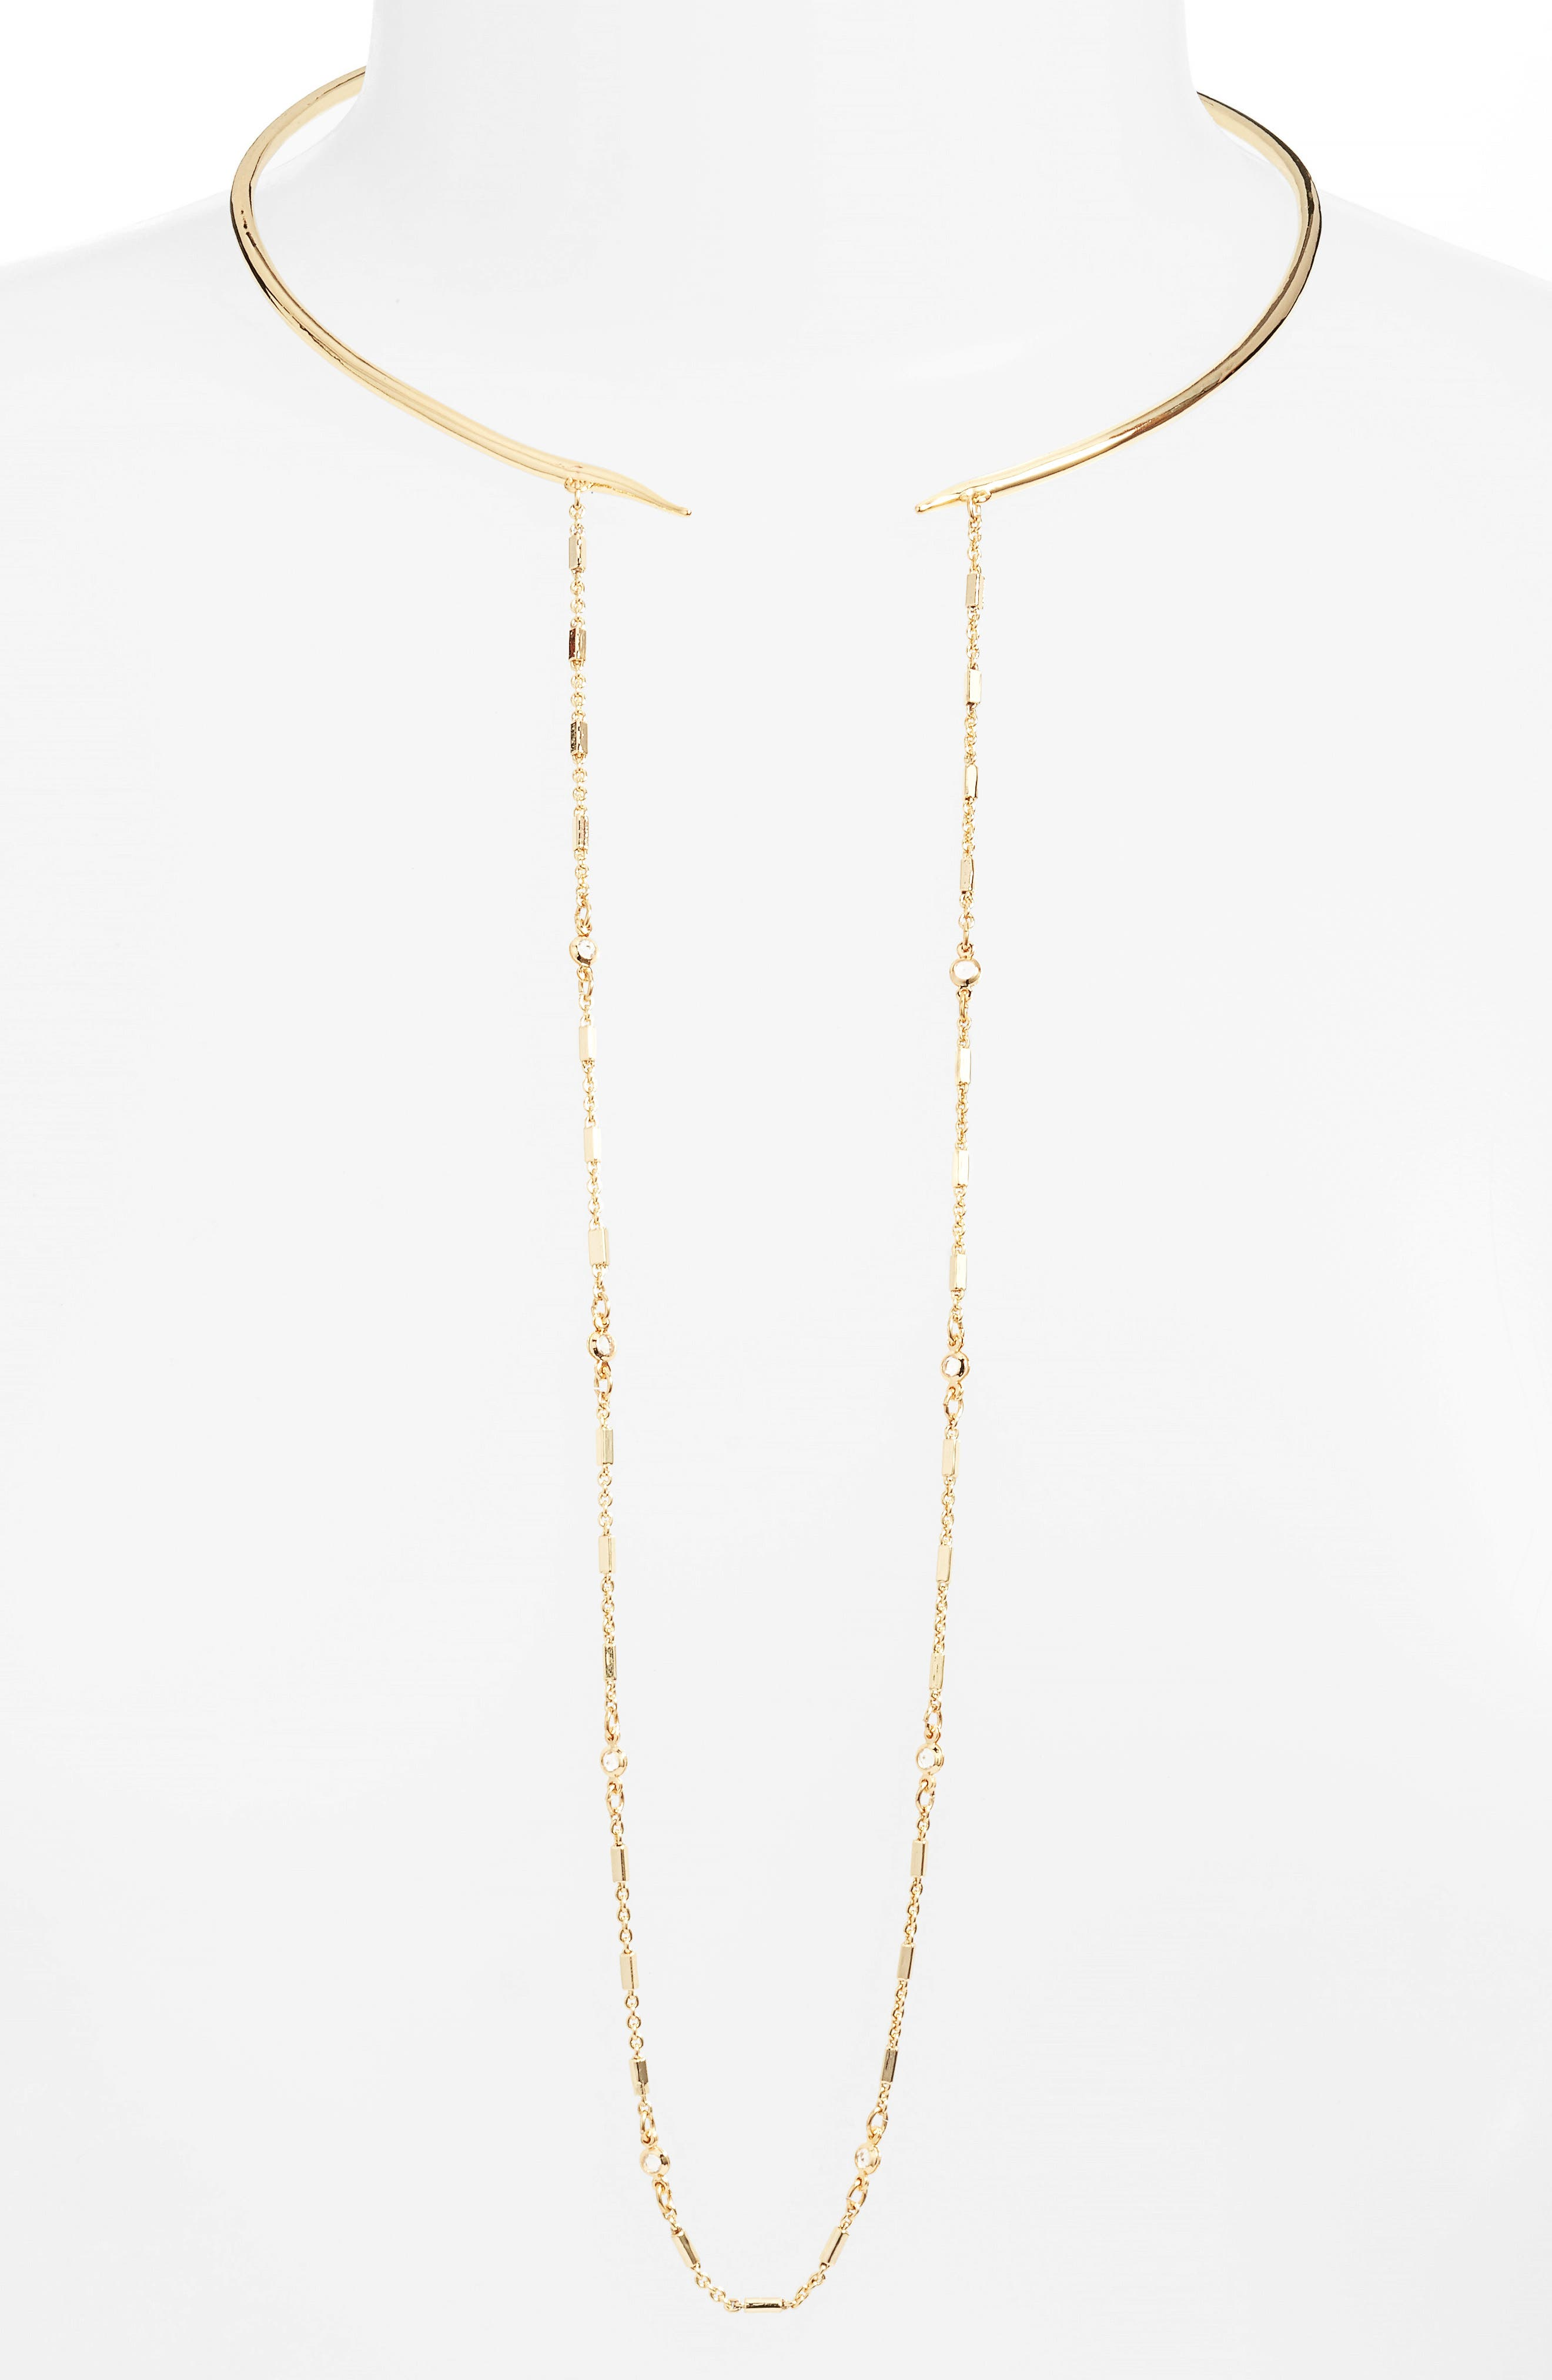 Vince Camuto Hinge Collar Necklace